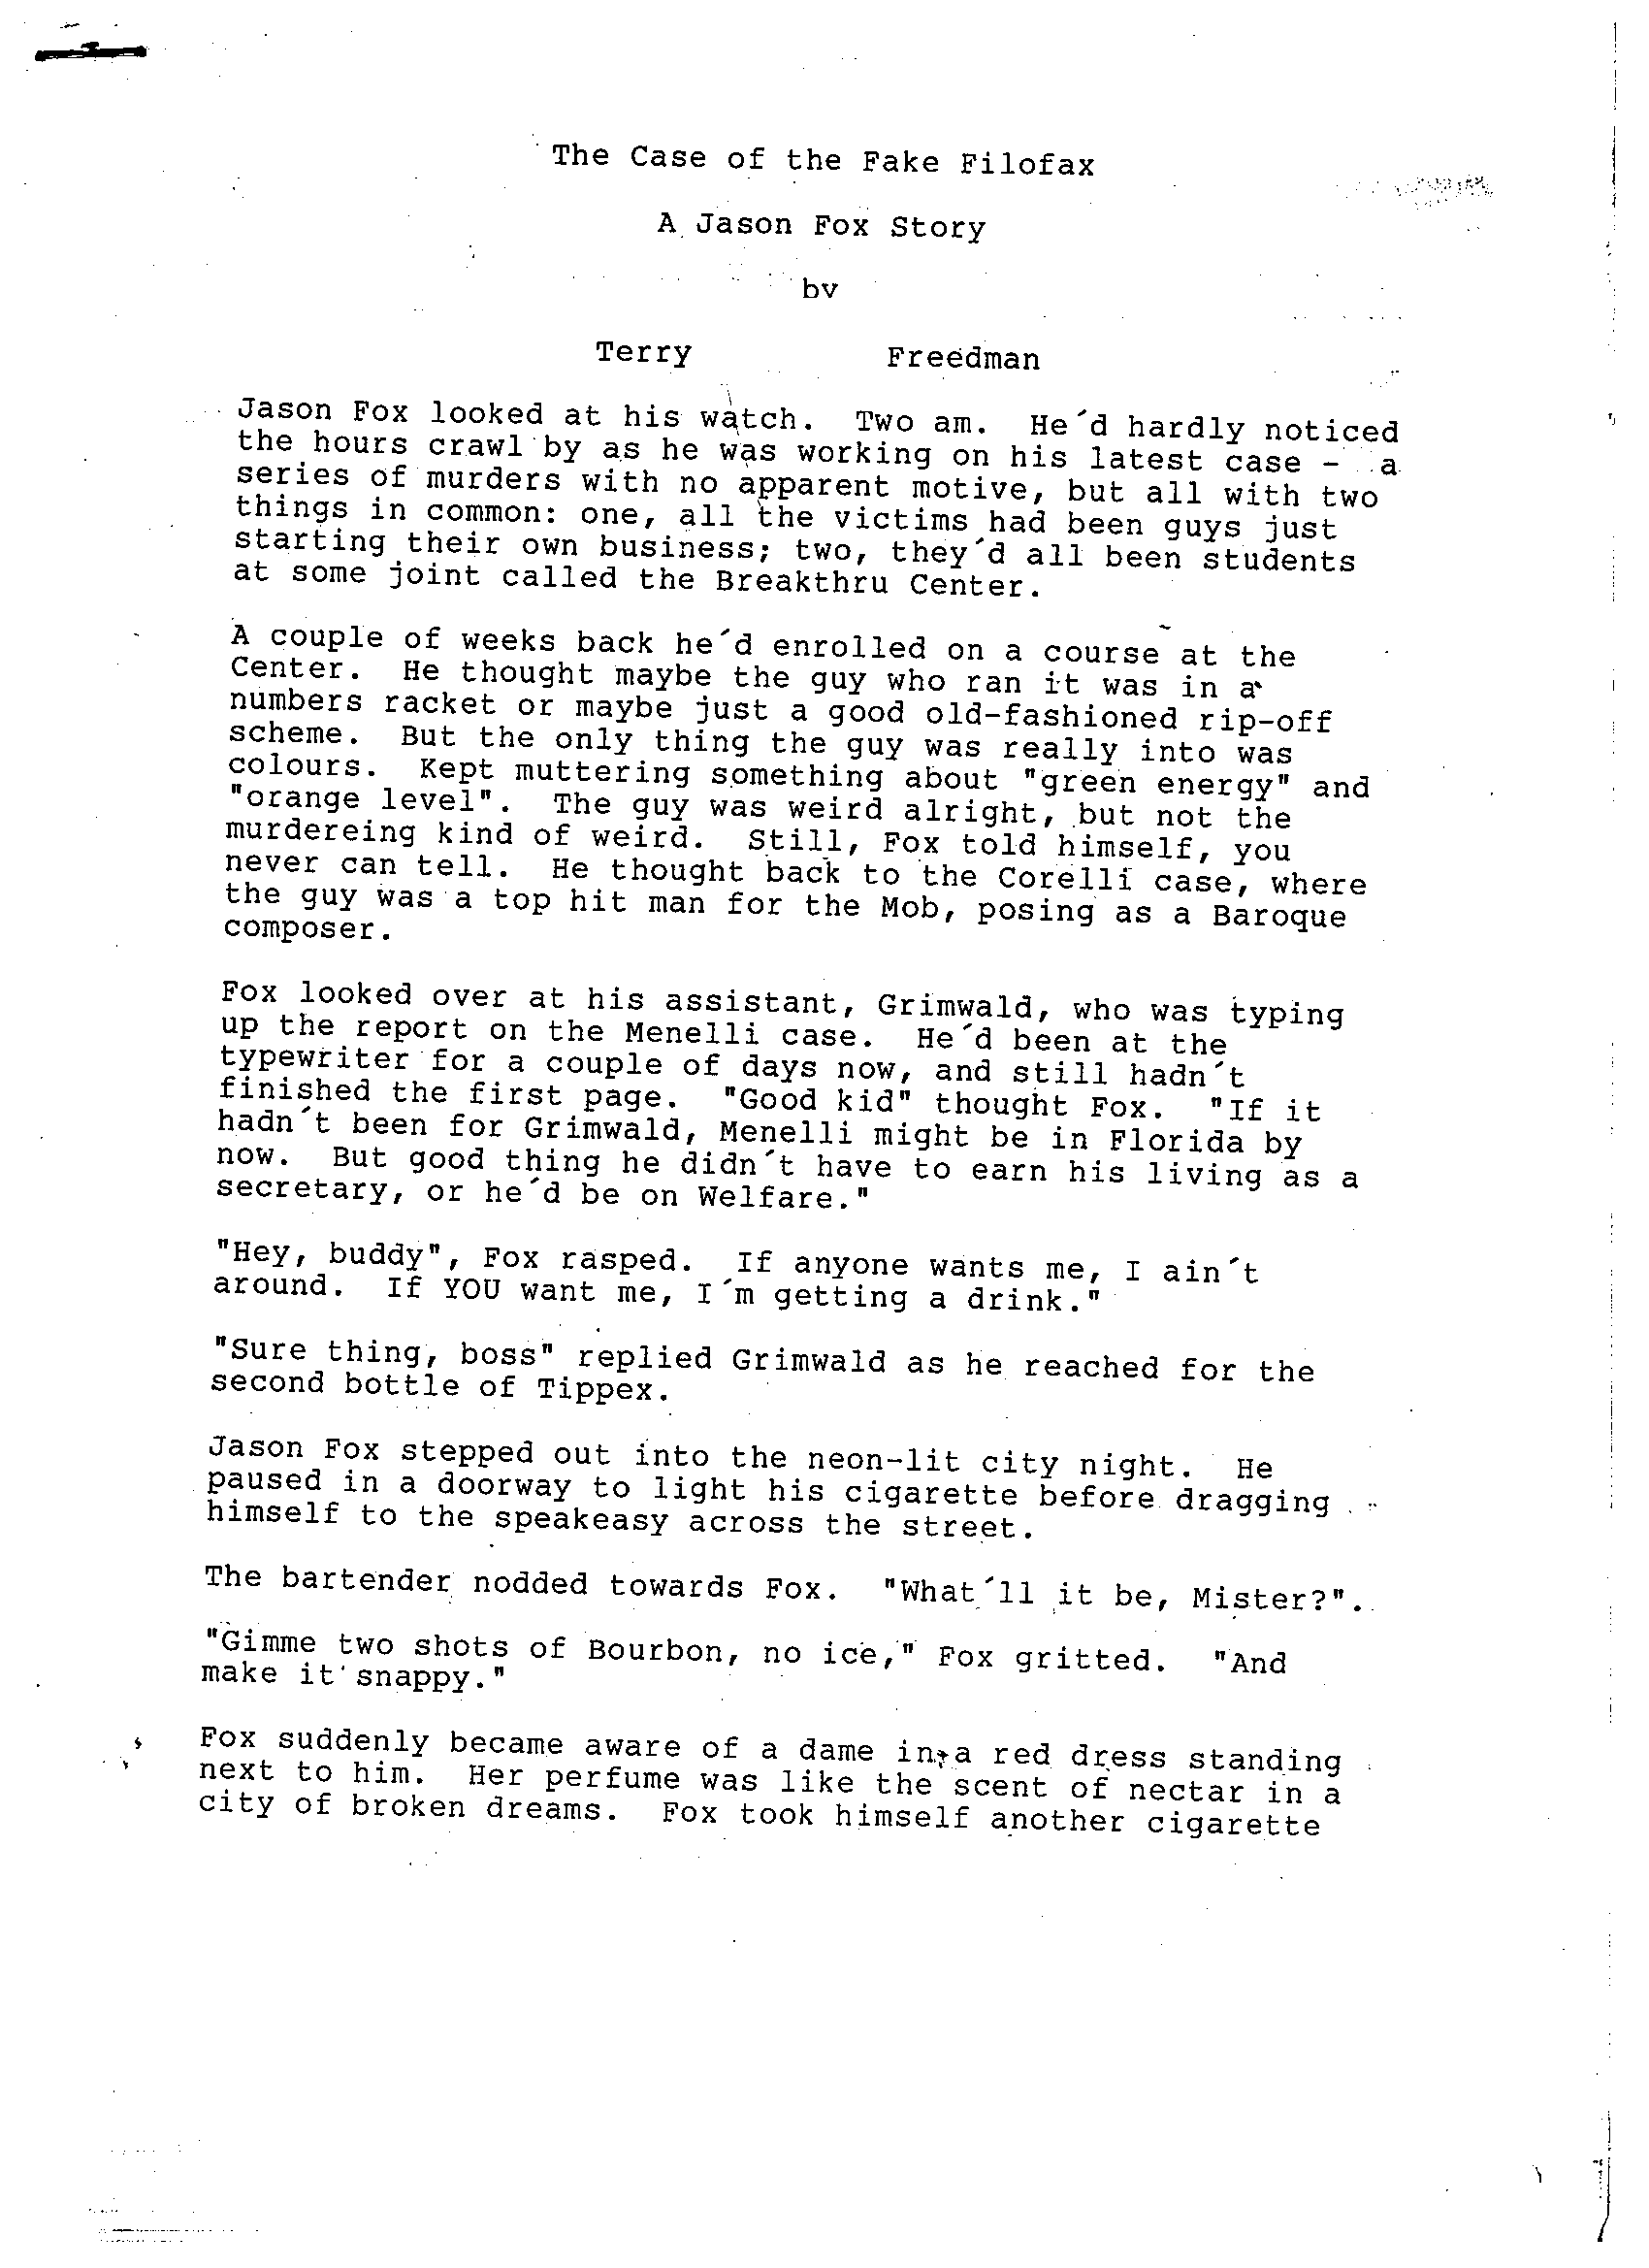 The first page of the original typewritten story, by Terry Freedman